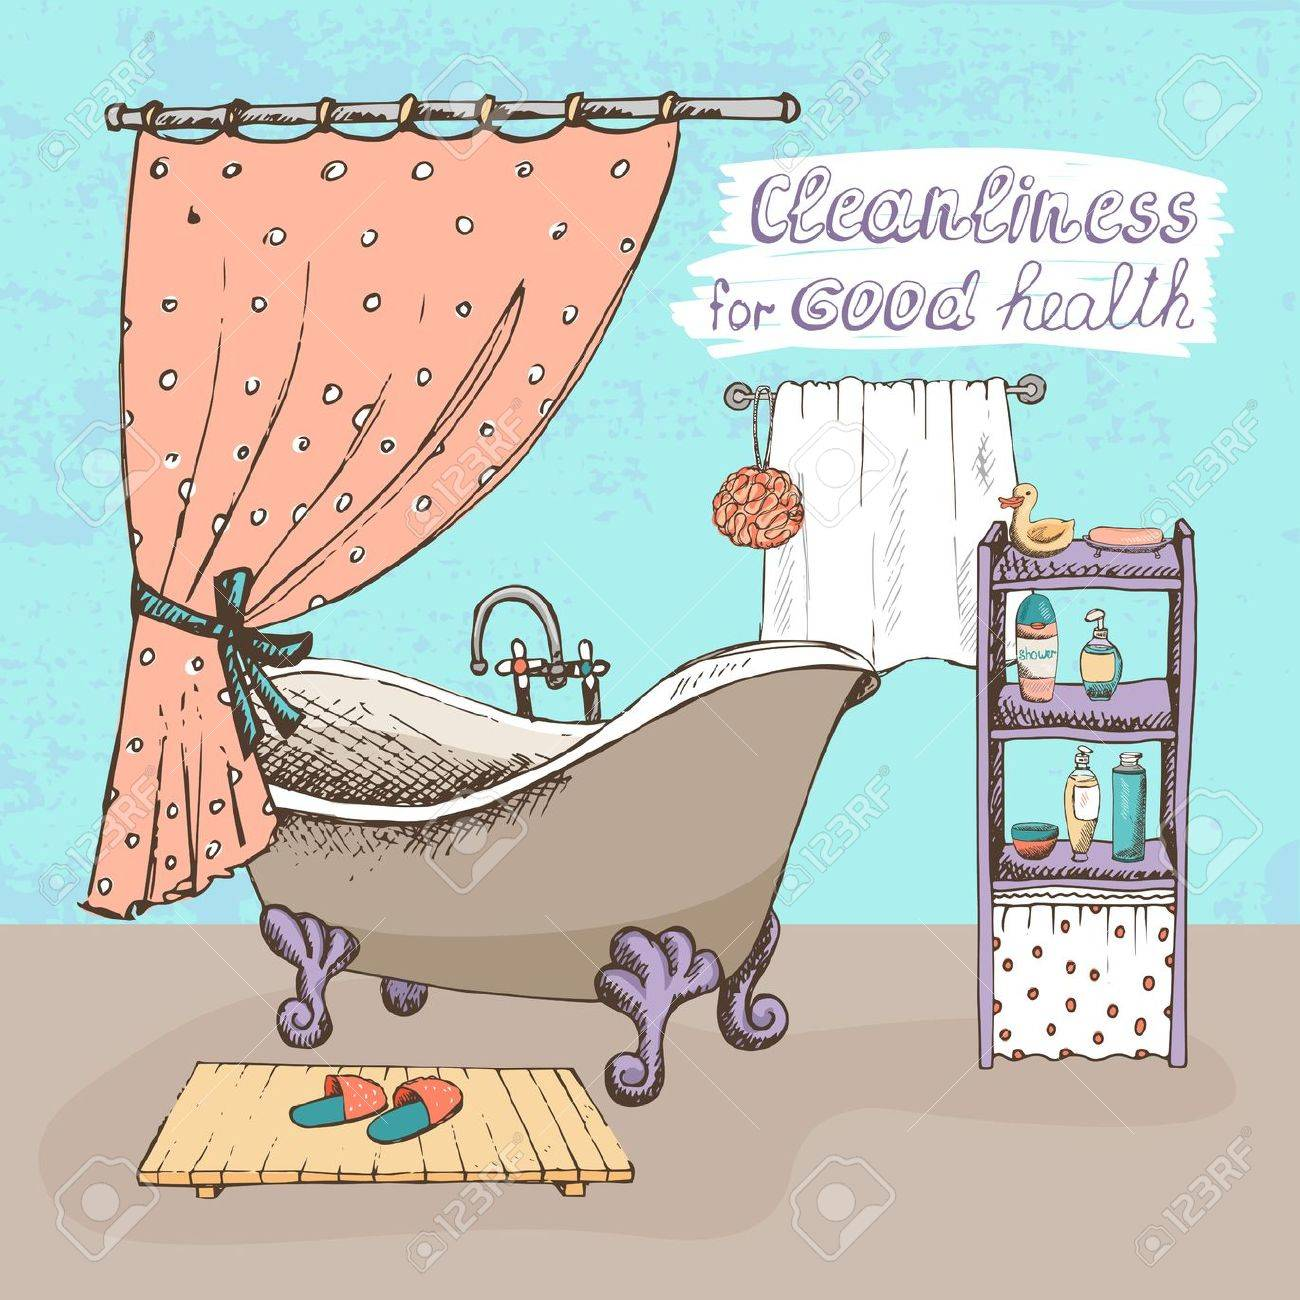 Cleanliness For Good Health Concept Showing A Bathroom Interior ...